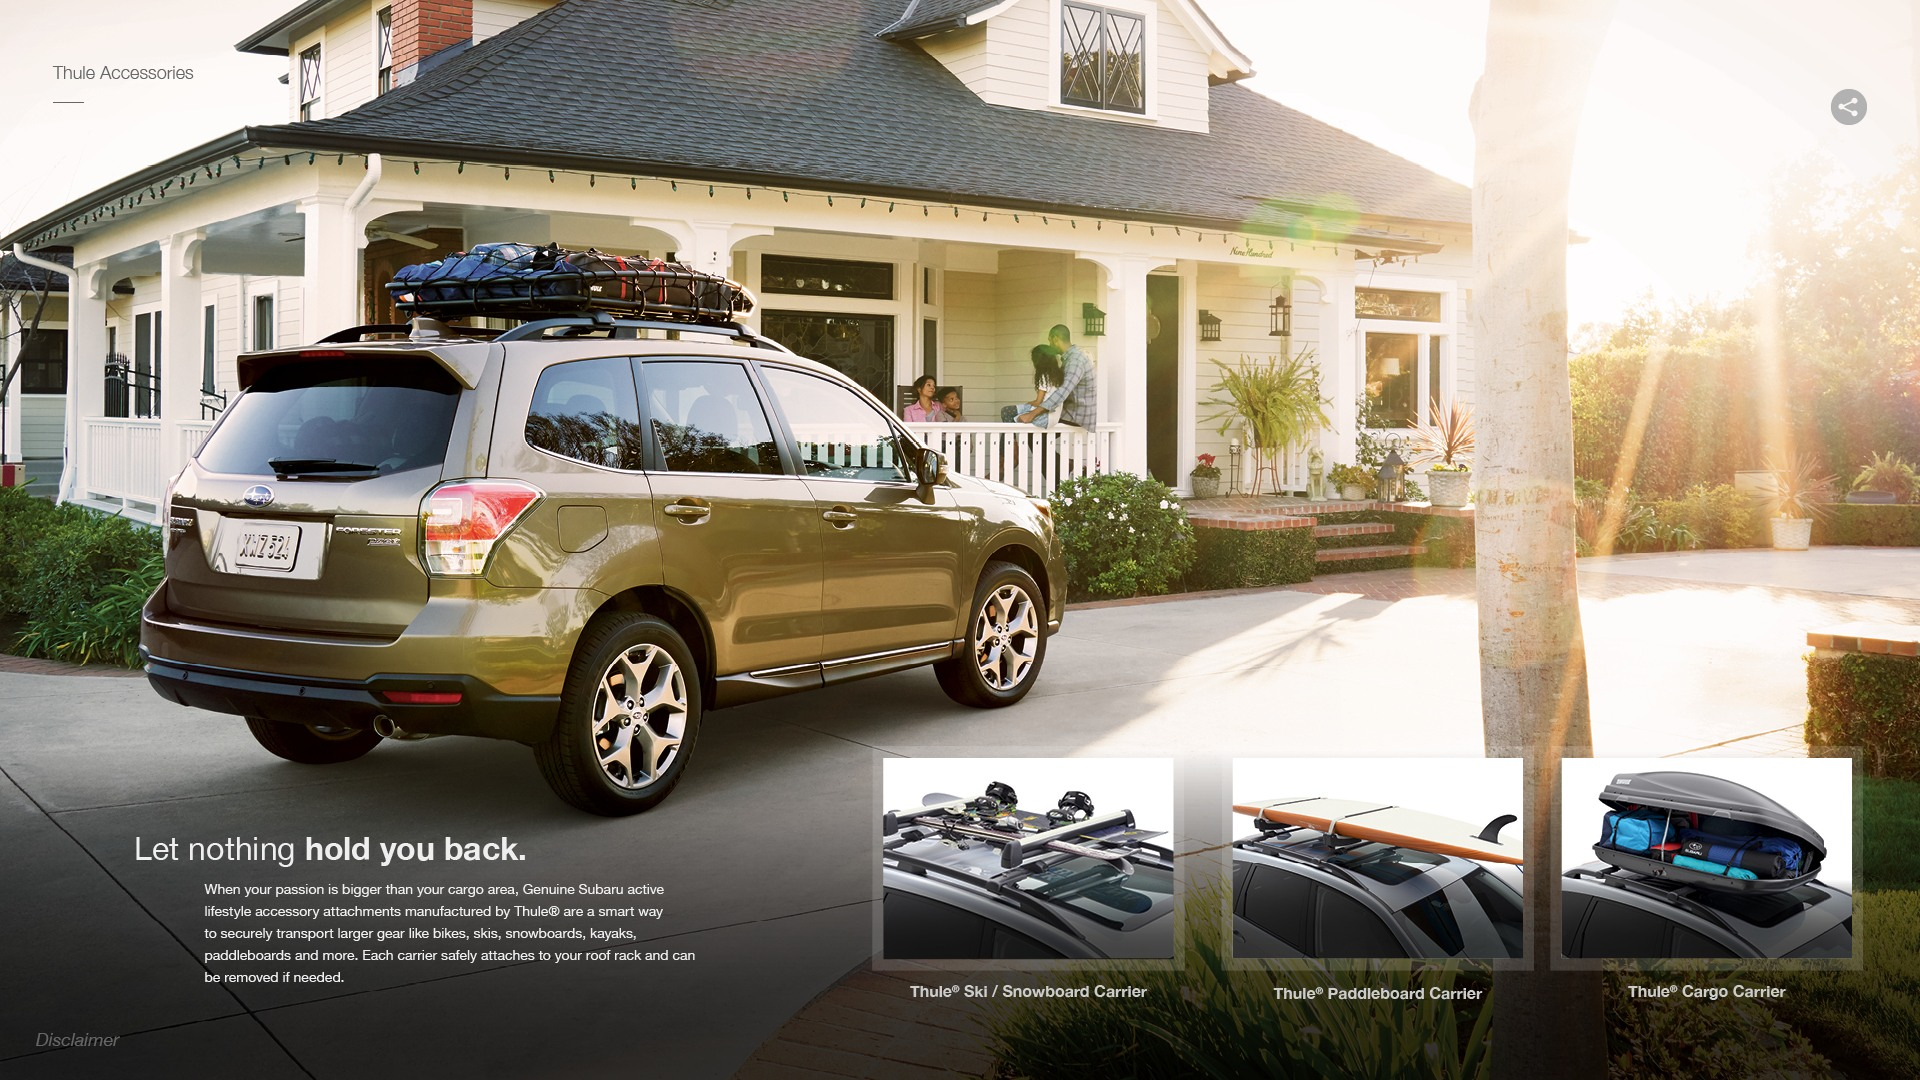 Thule Roof Rack & Accessories For 2018 Subaru Forester